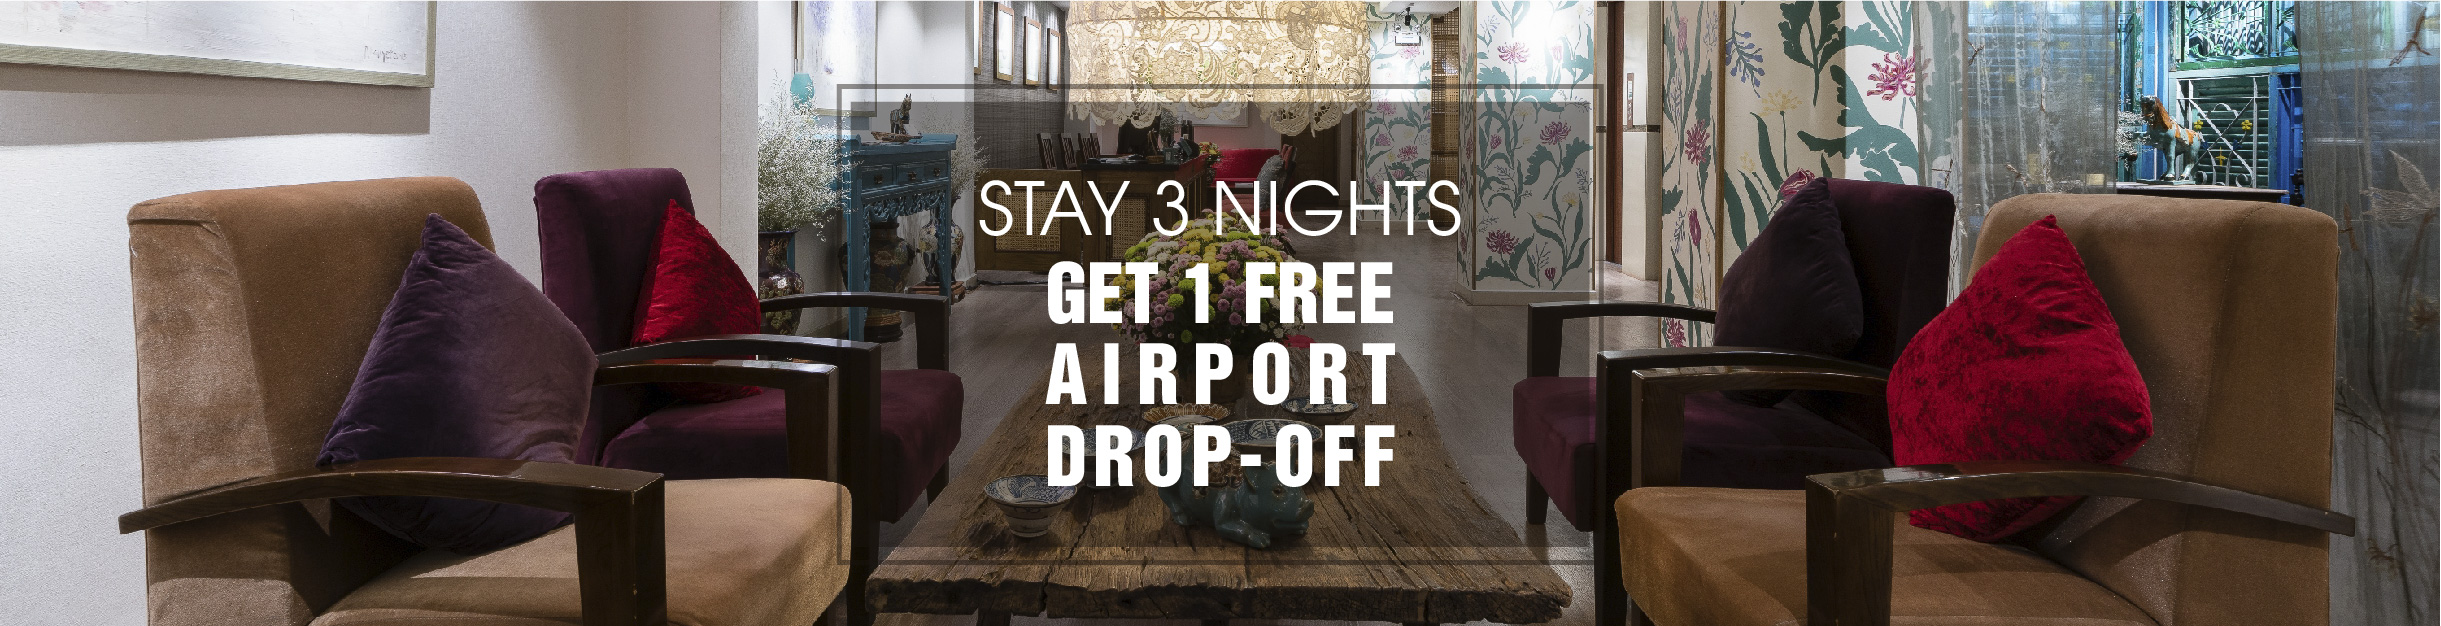 Stay 3 consecutive nights get free drop-off